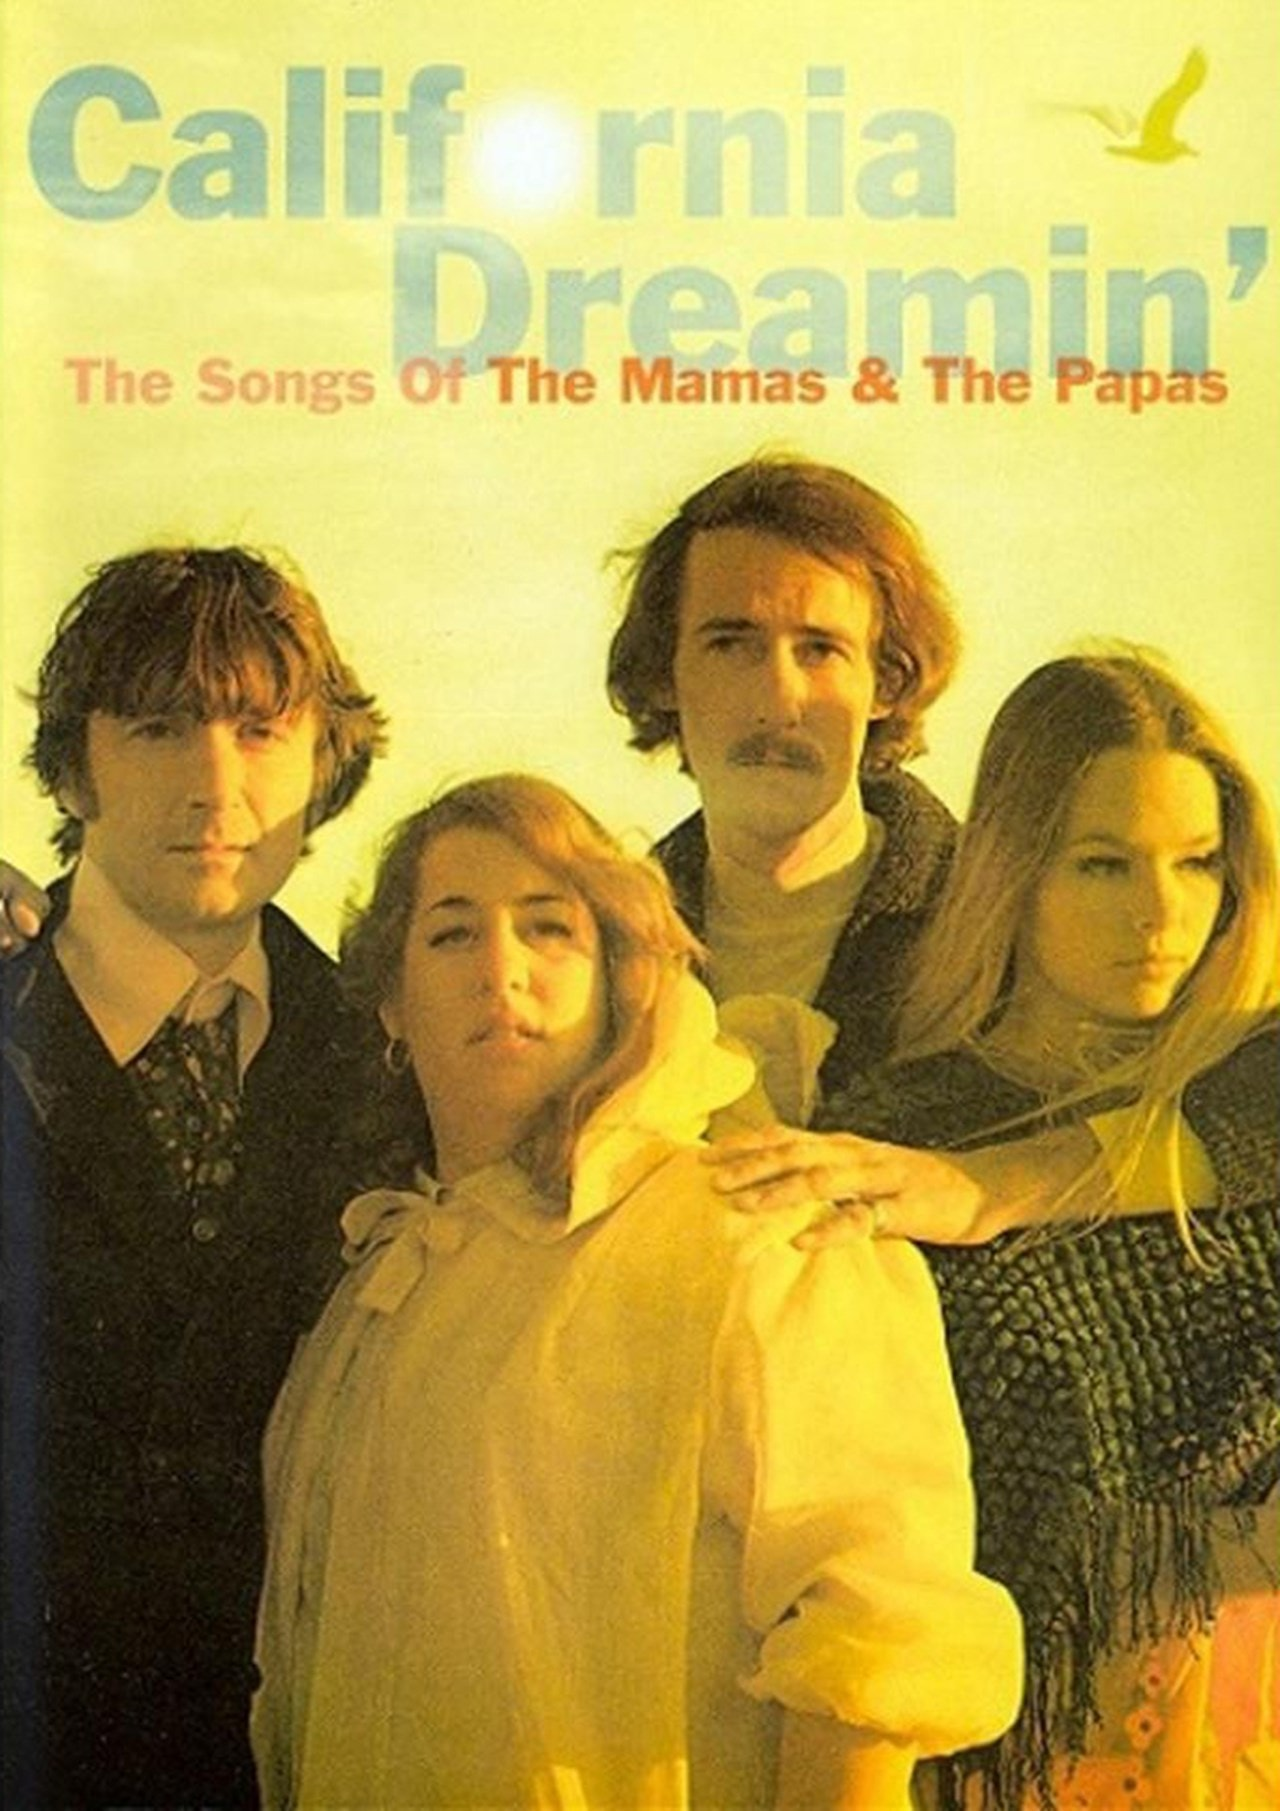 The Mamas and the Papas: California Dreaming - The Songs Of - 1